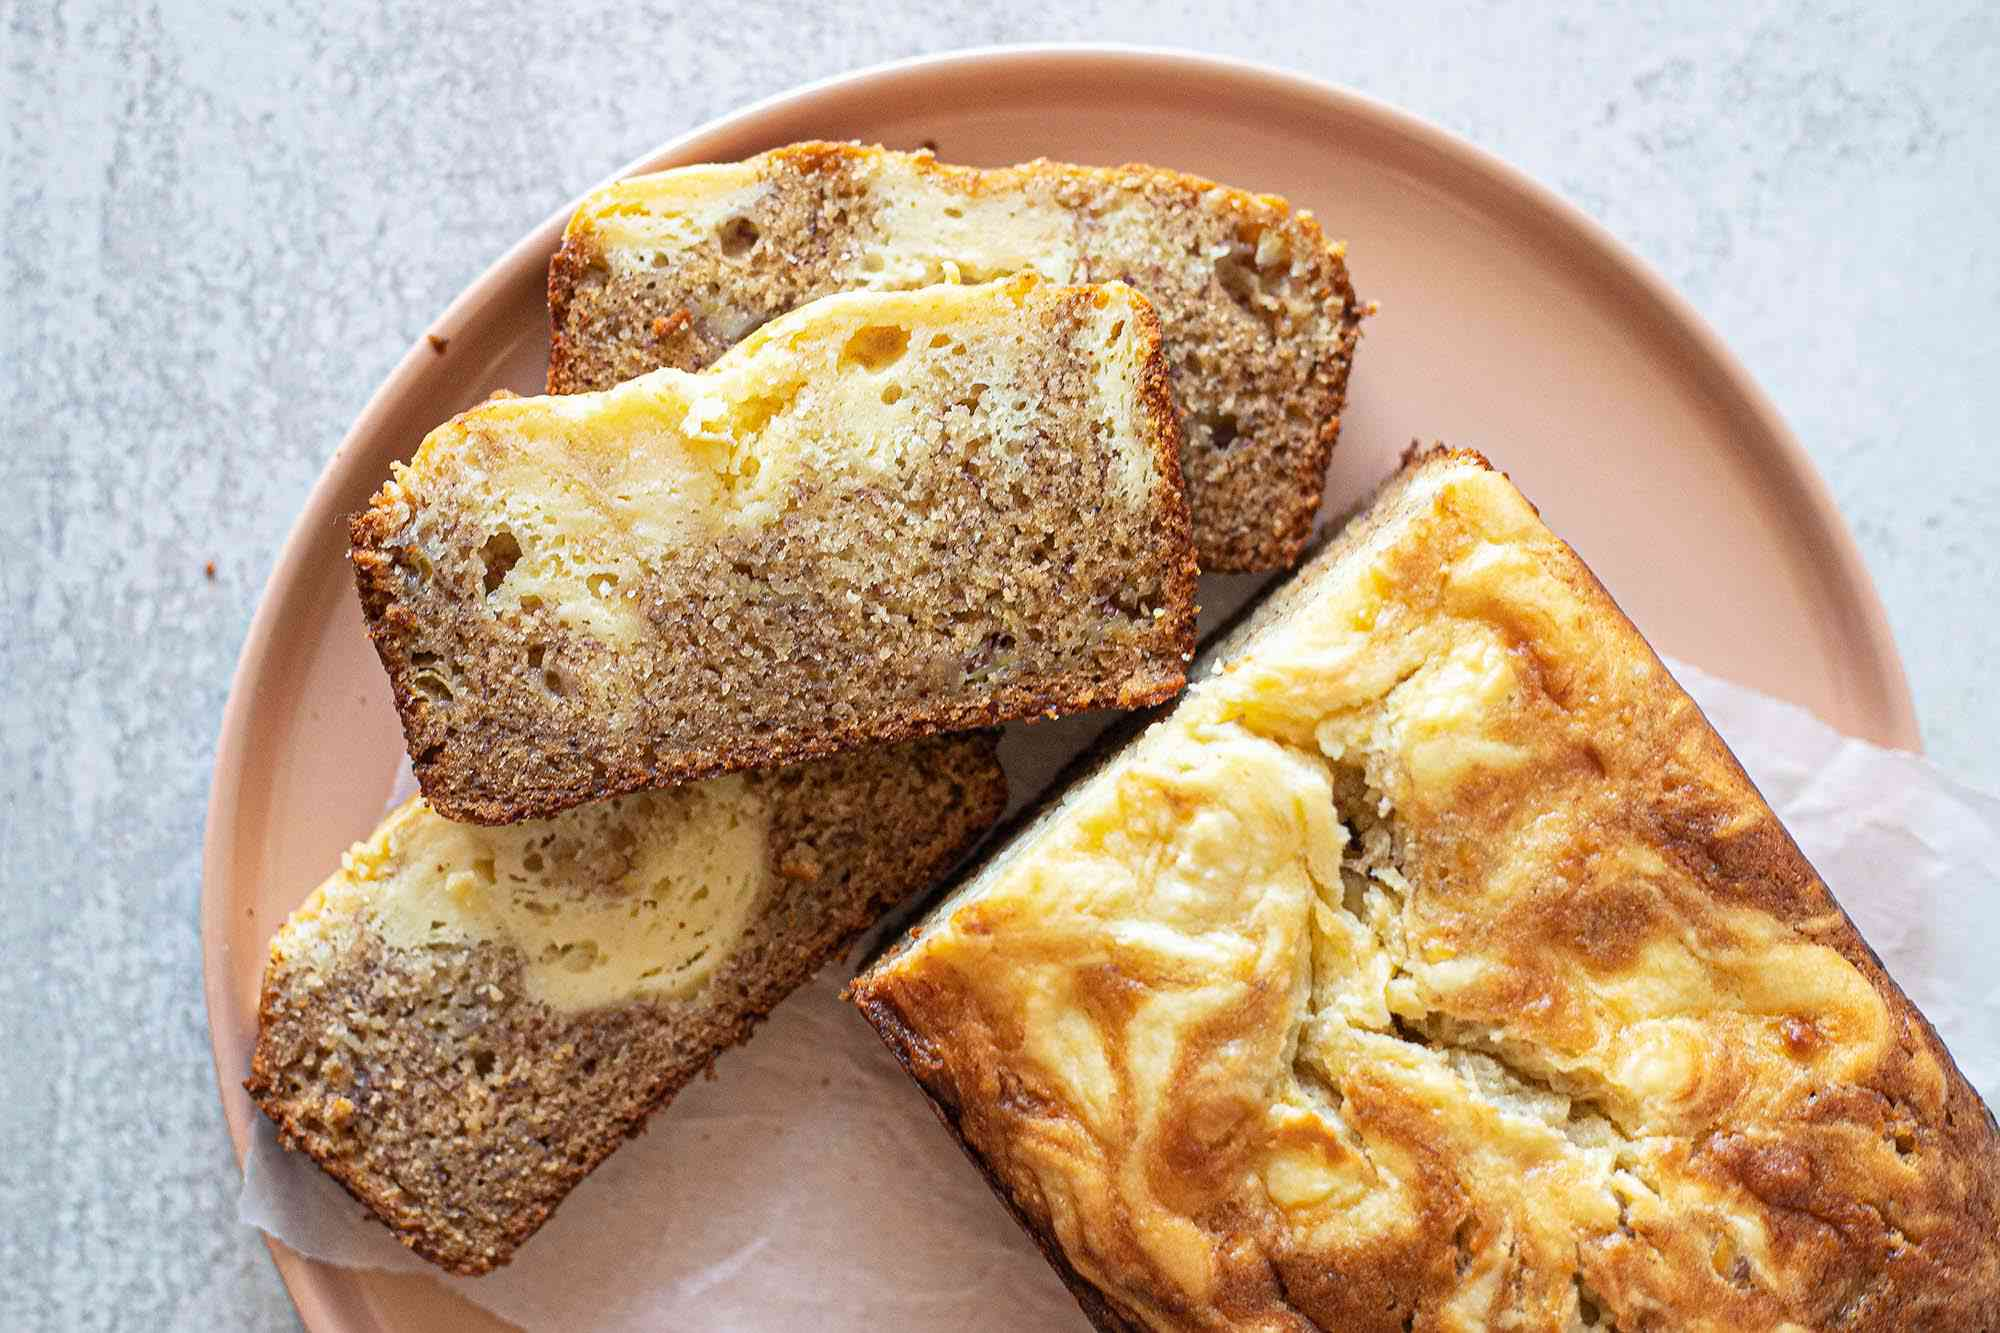 Overhead view of a loaf of banana bread with cream cheese on a plate. Three slices are laying in front of the loaf.